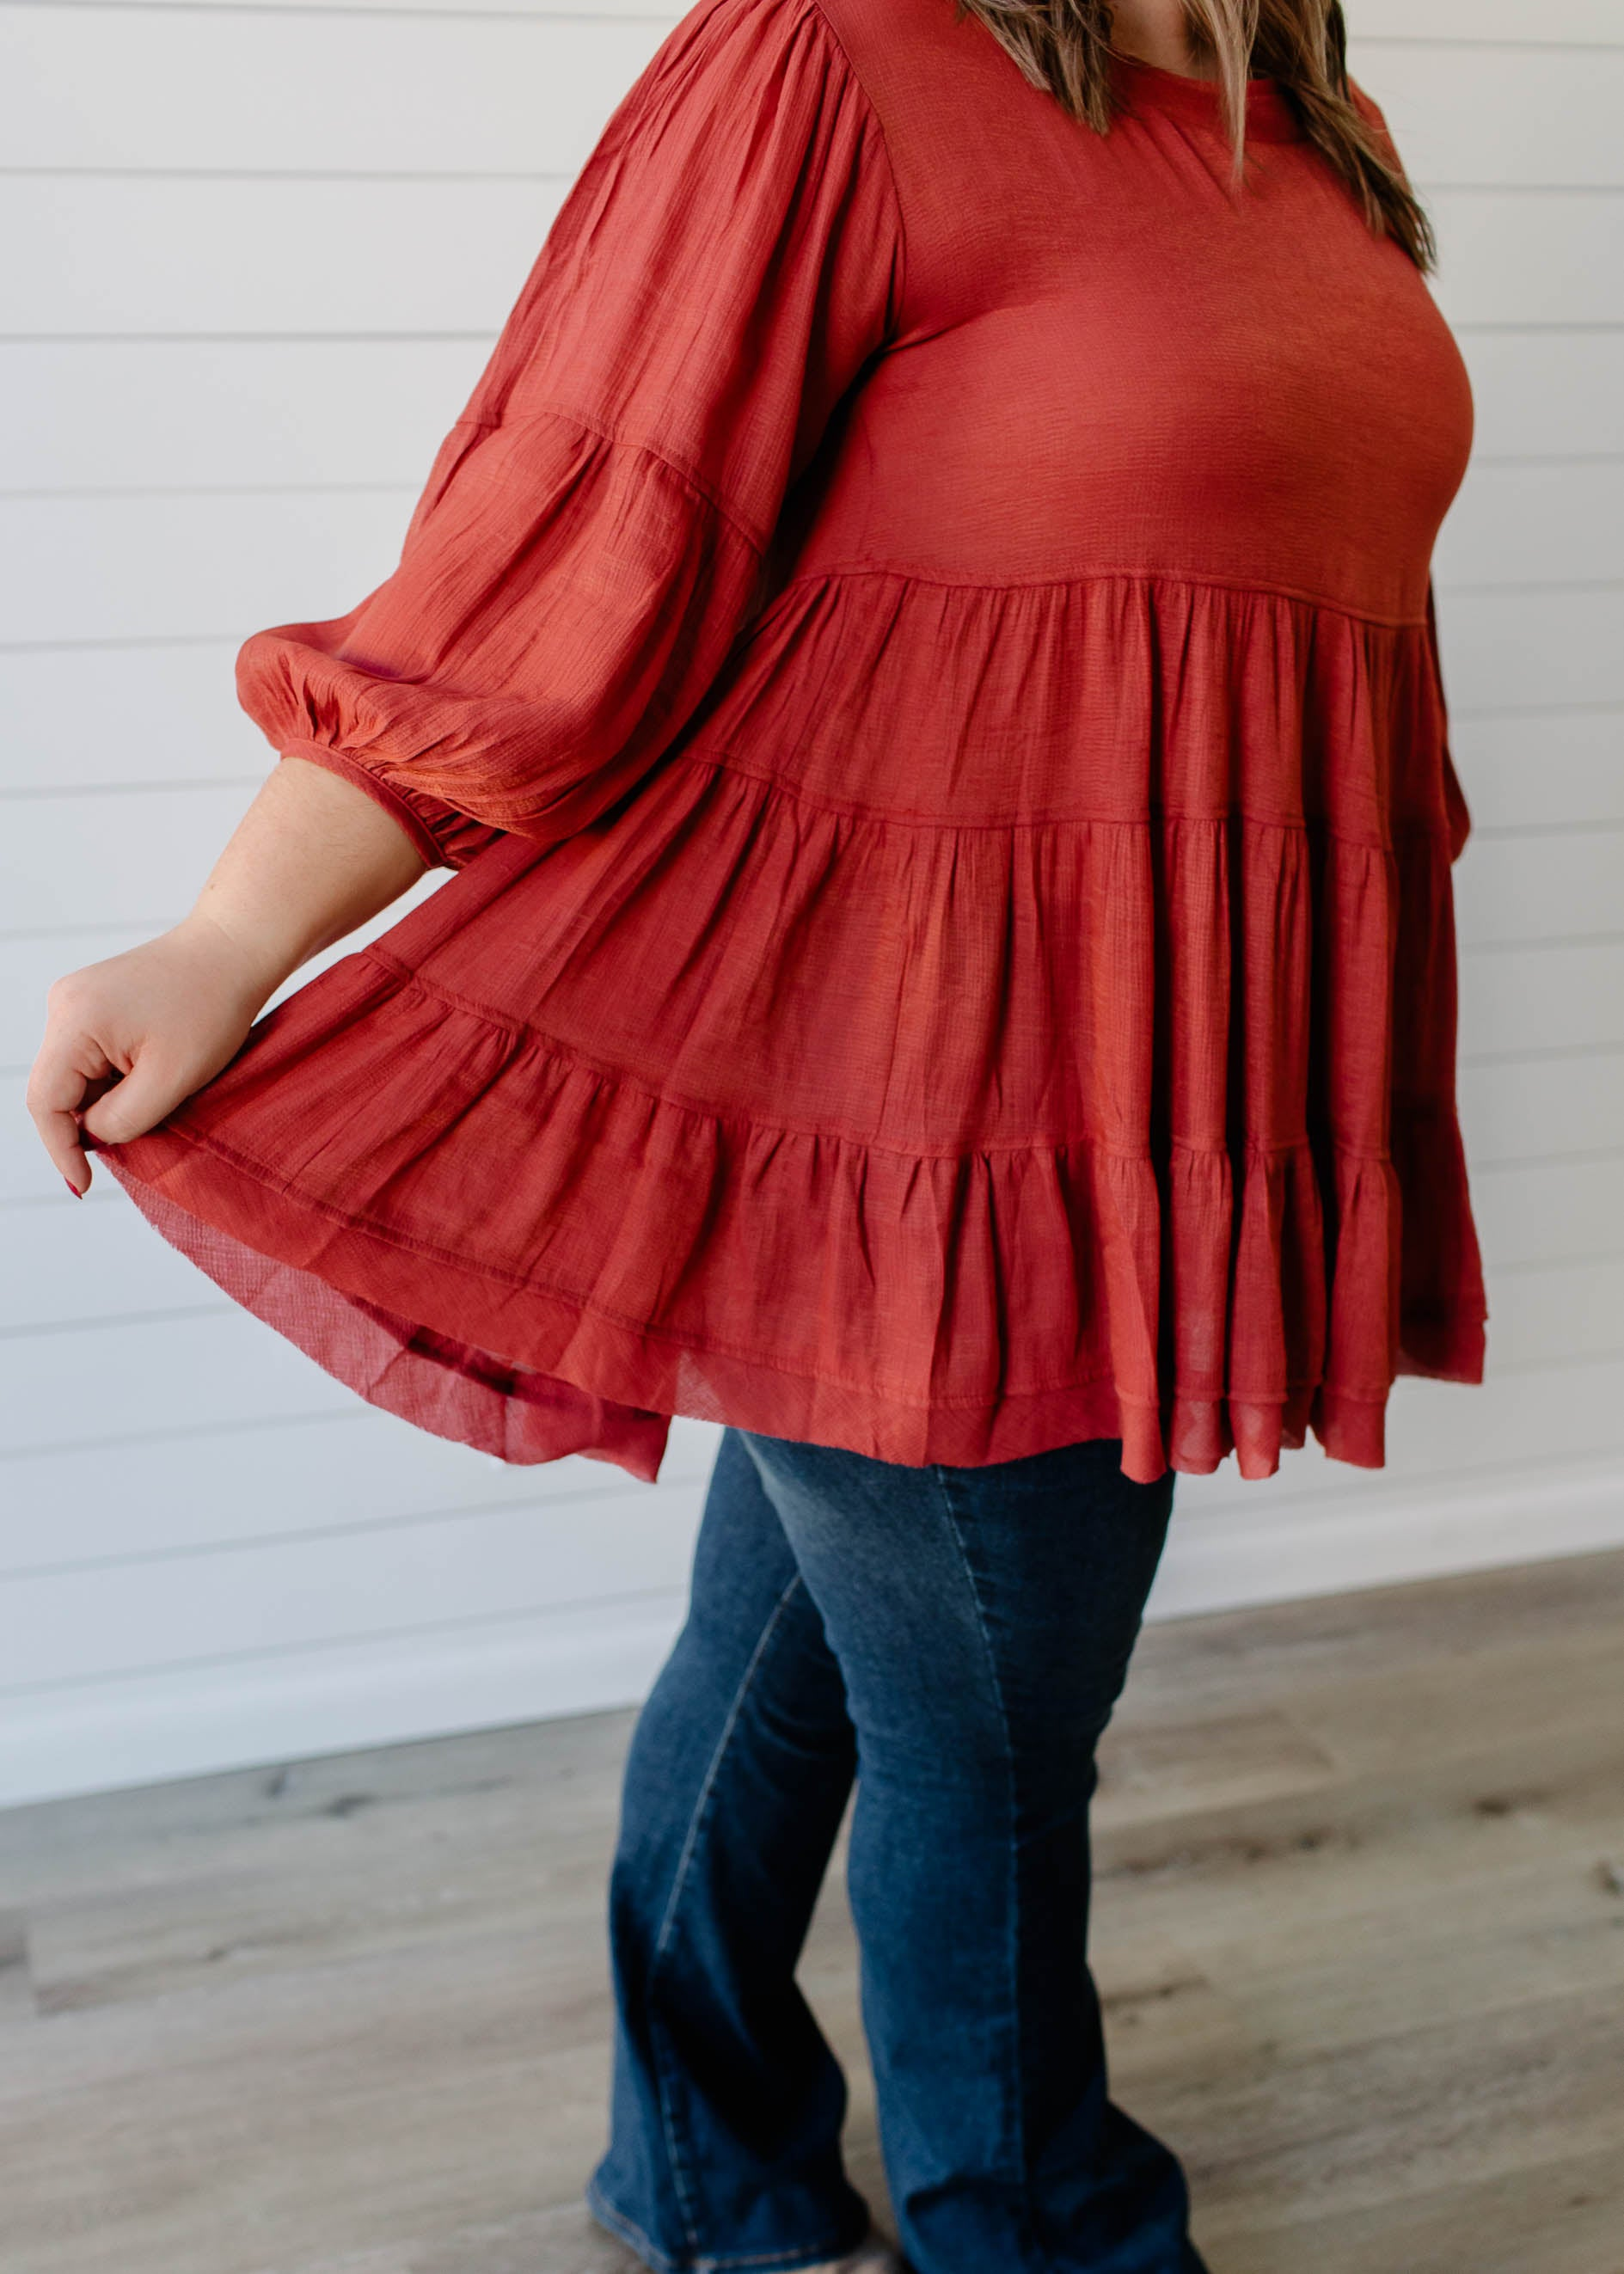 Kendra - Marsala Tiered 3/4 Balloon Sleeve Top